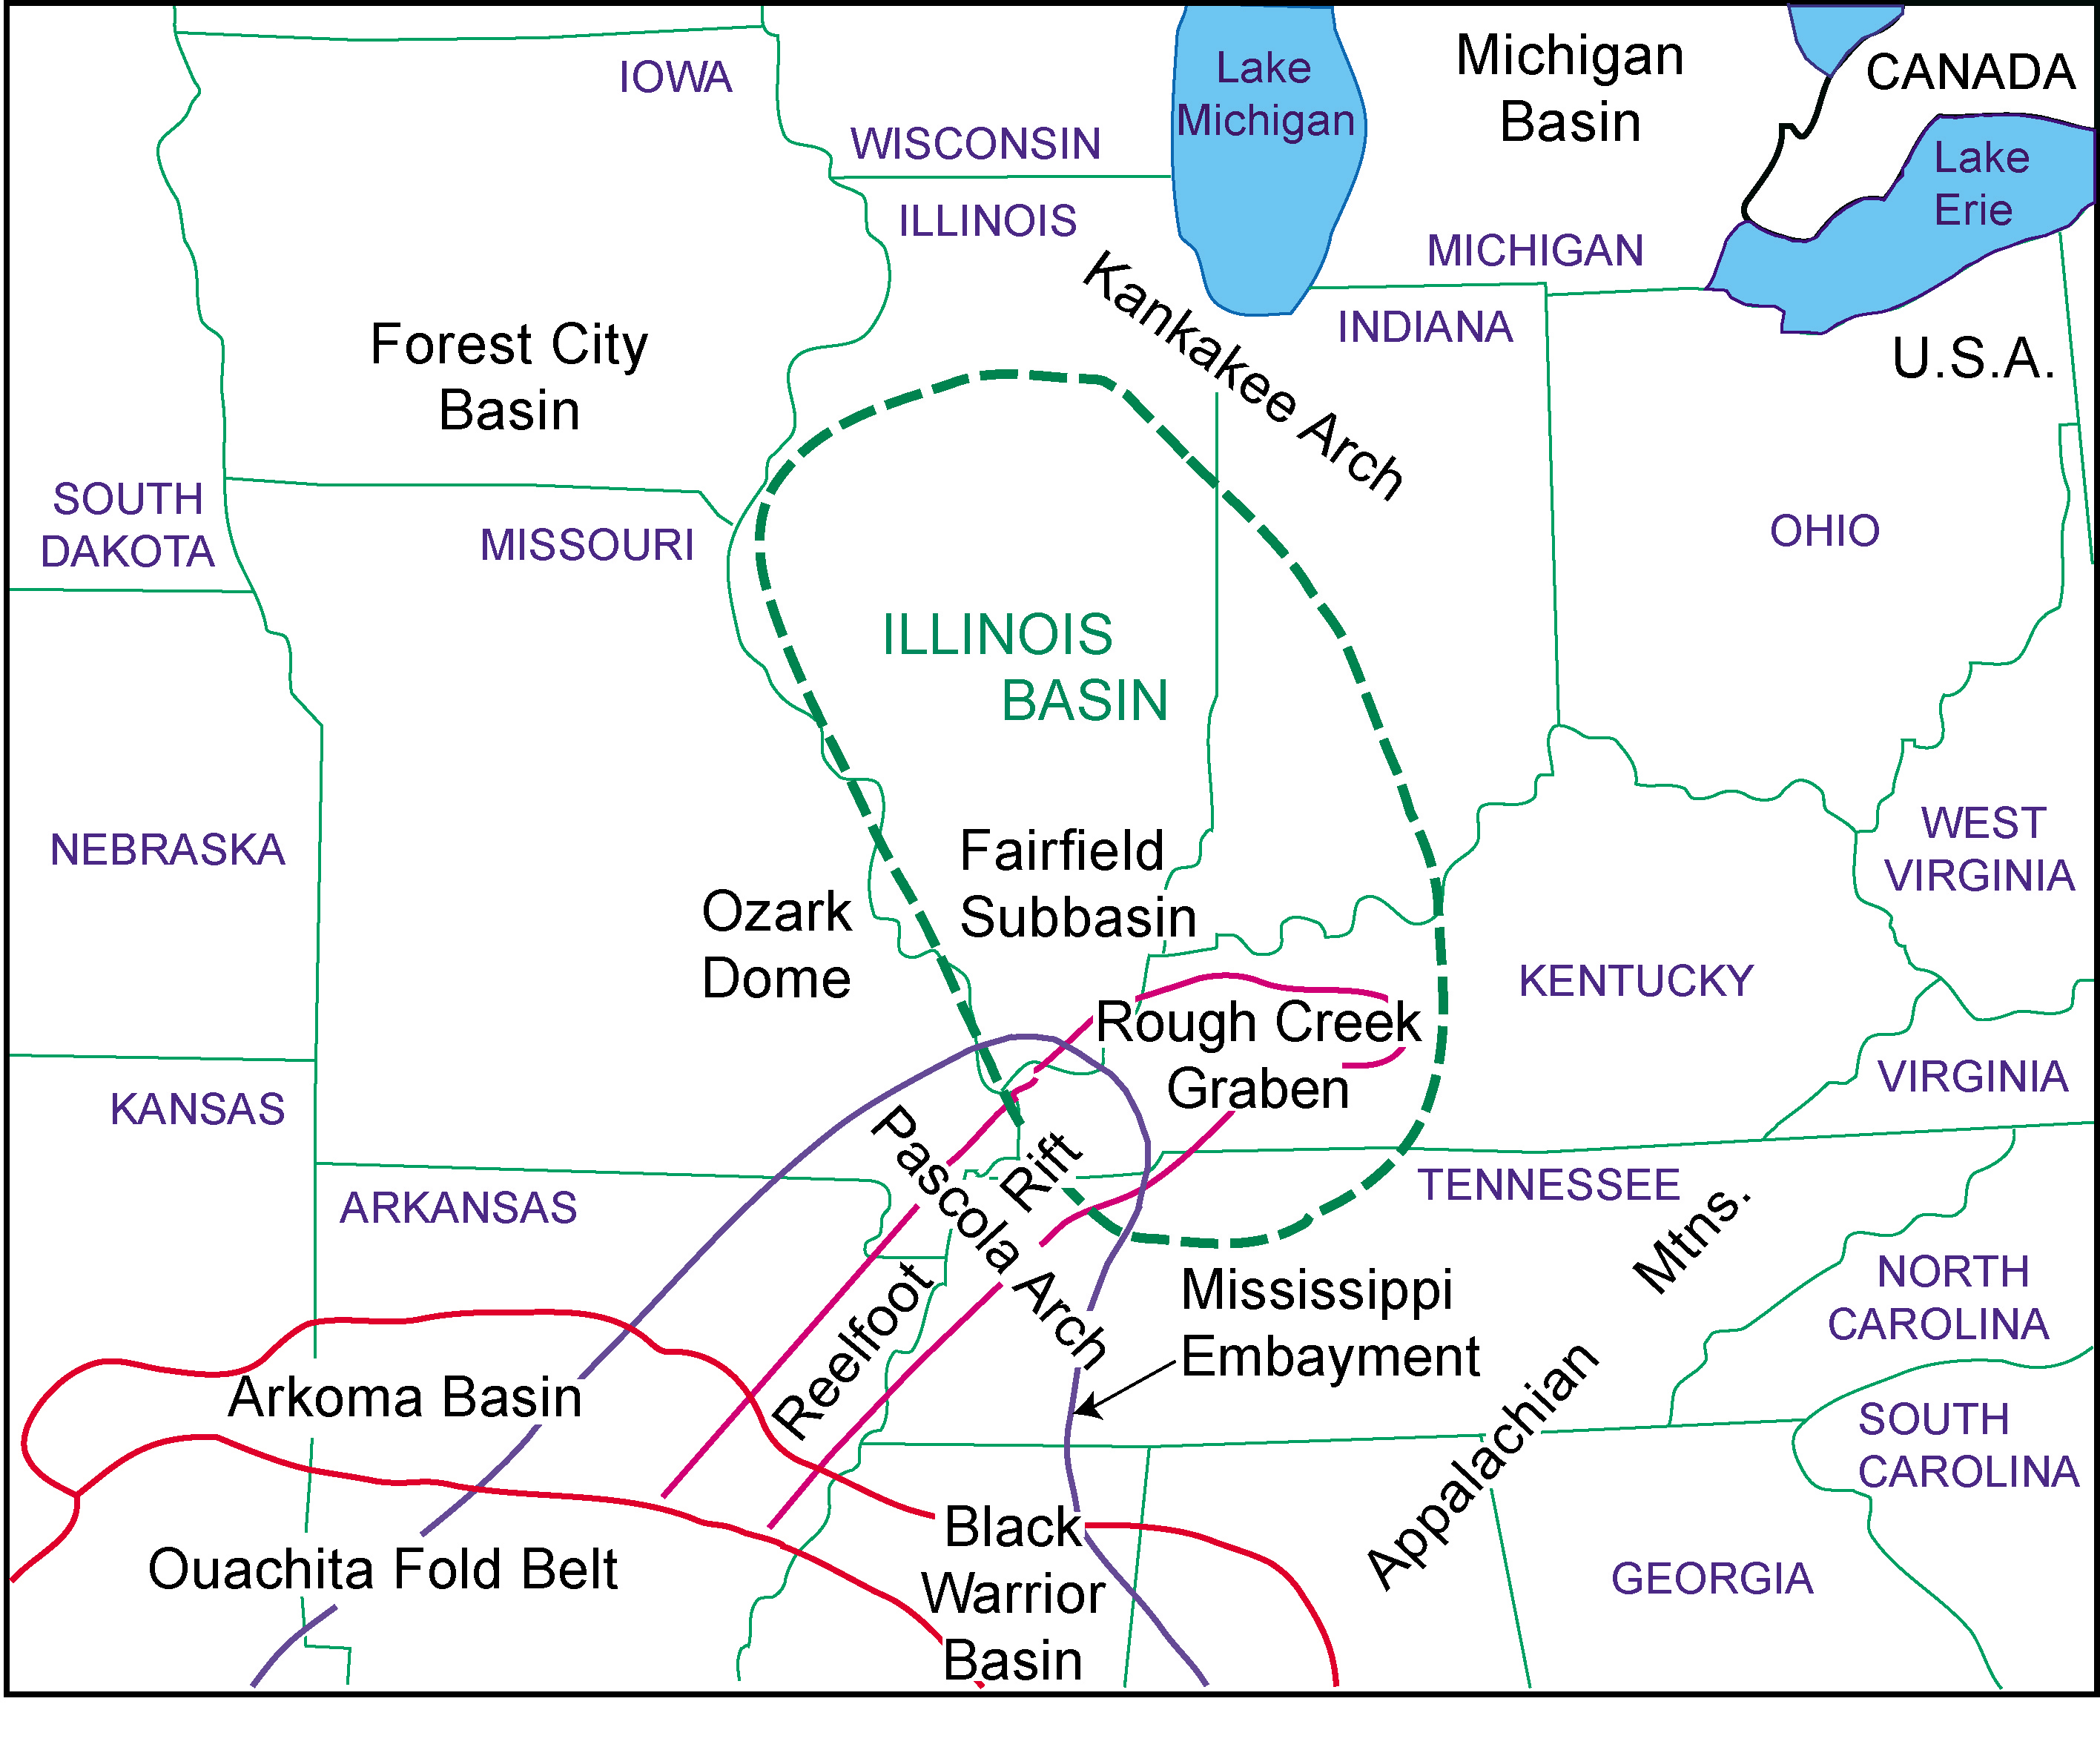 Eastern Us Fault Lines Map - Fault lines in georgia